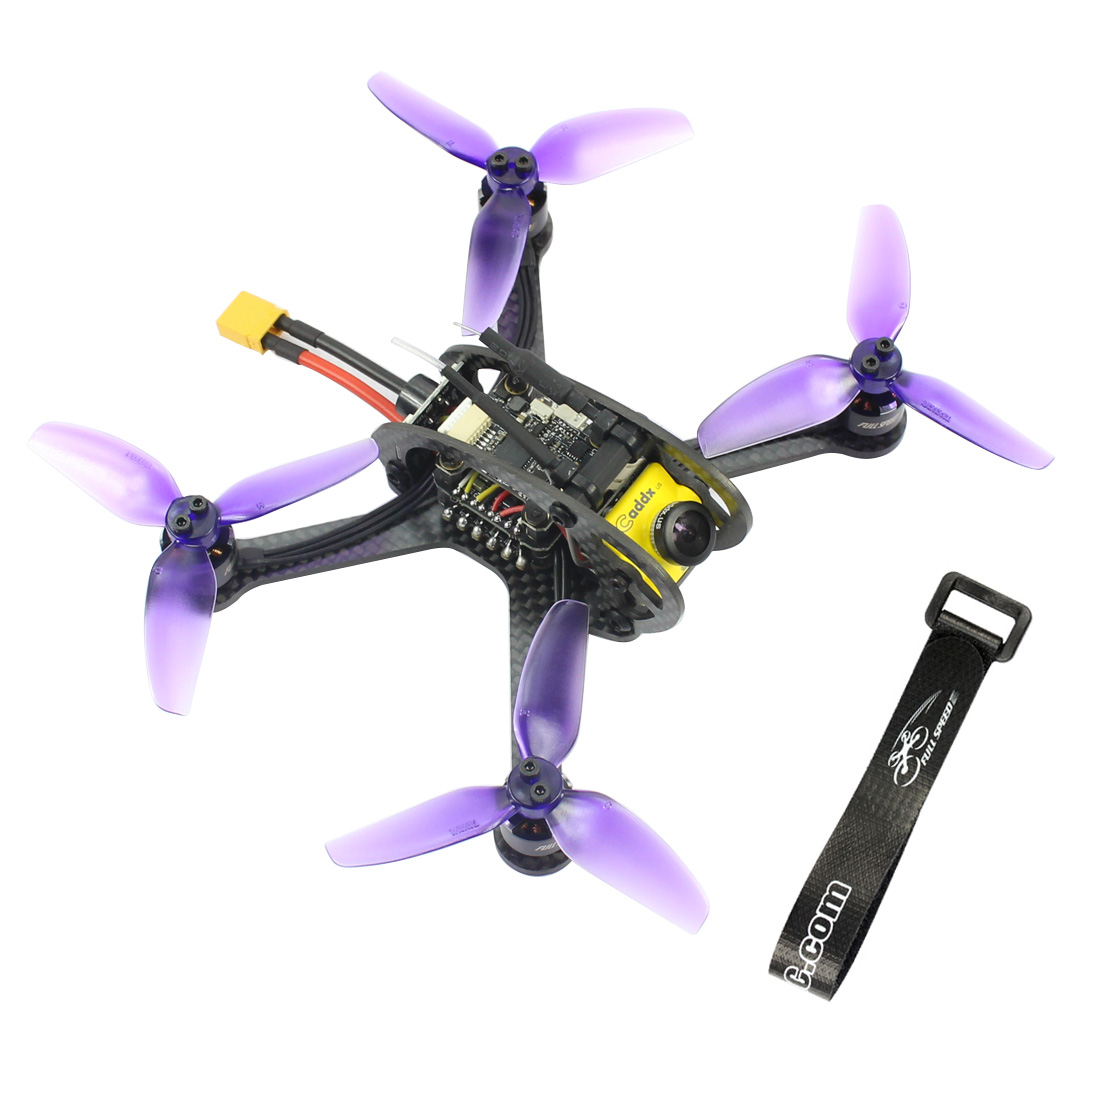 Leader3 / 3SE 130mm FPV RACING DRONE 5.8GHz Mini Drone with 4500KV Brushless Motor+FSD428 F411 28A Flight Tower